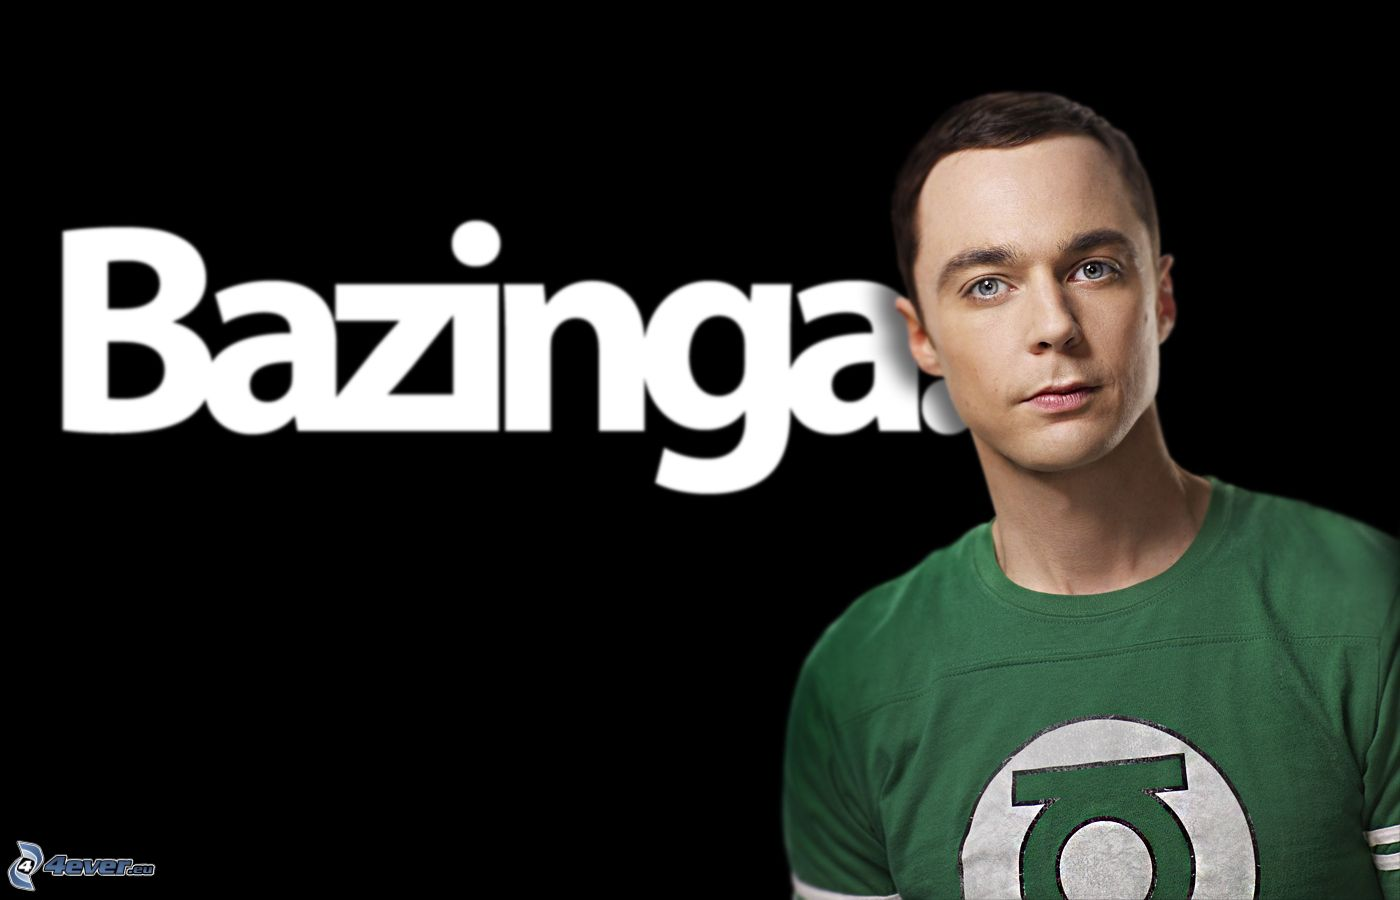 Sheldon-Spin-Off in der Mache